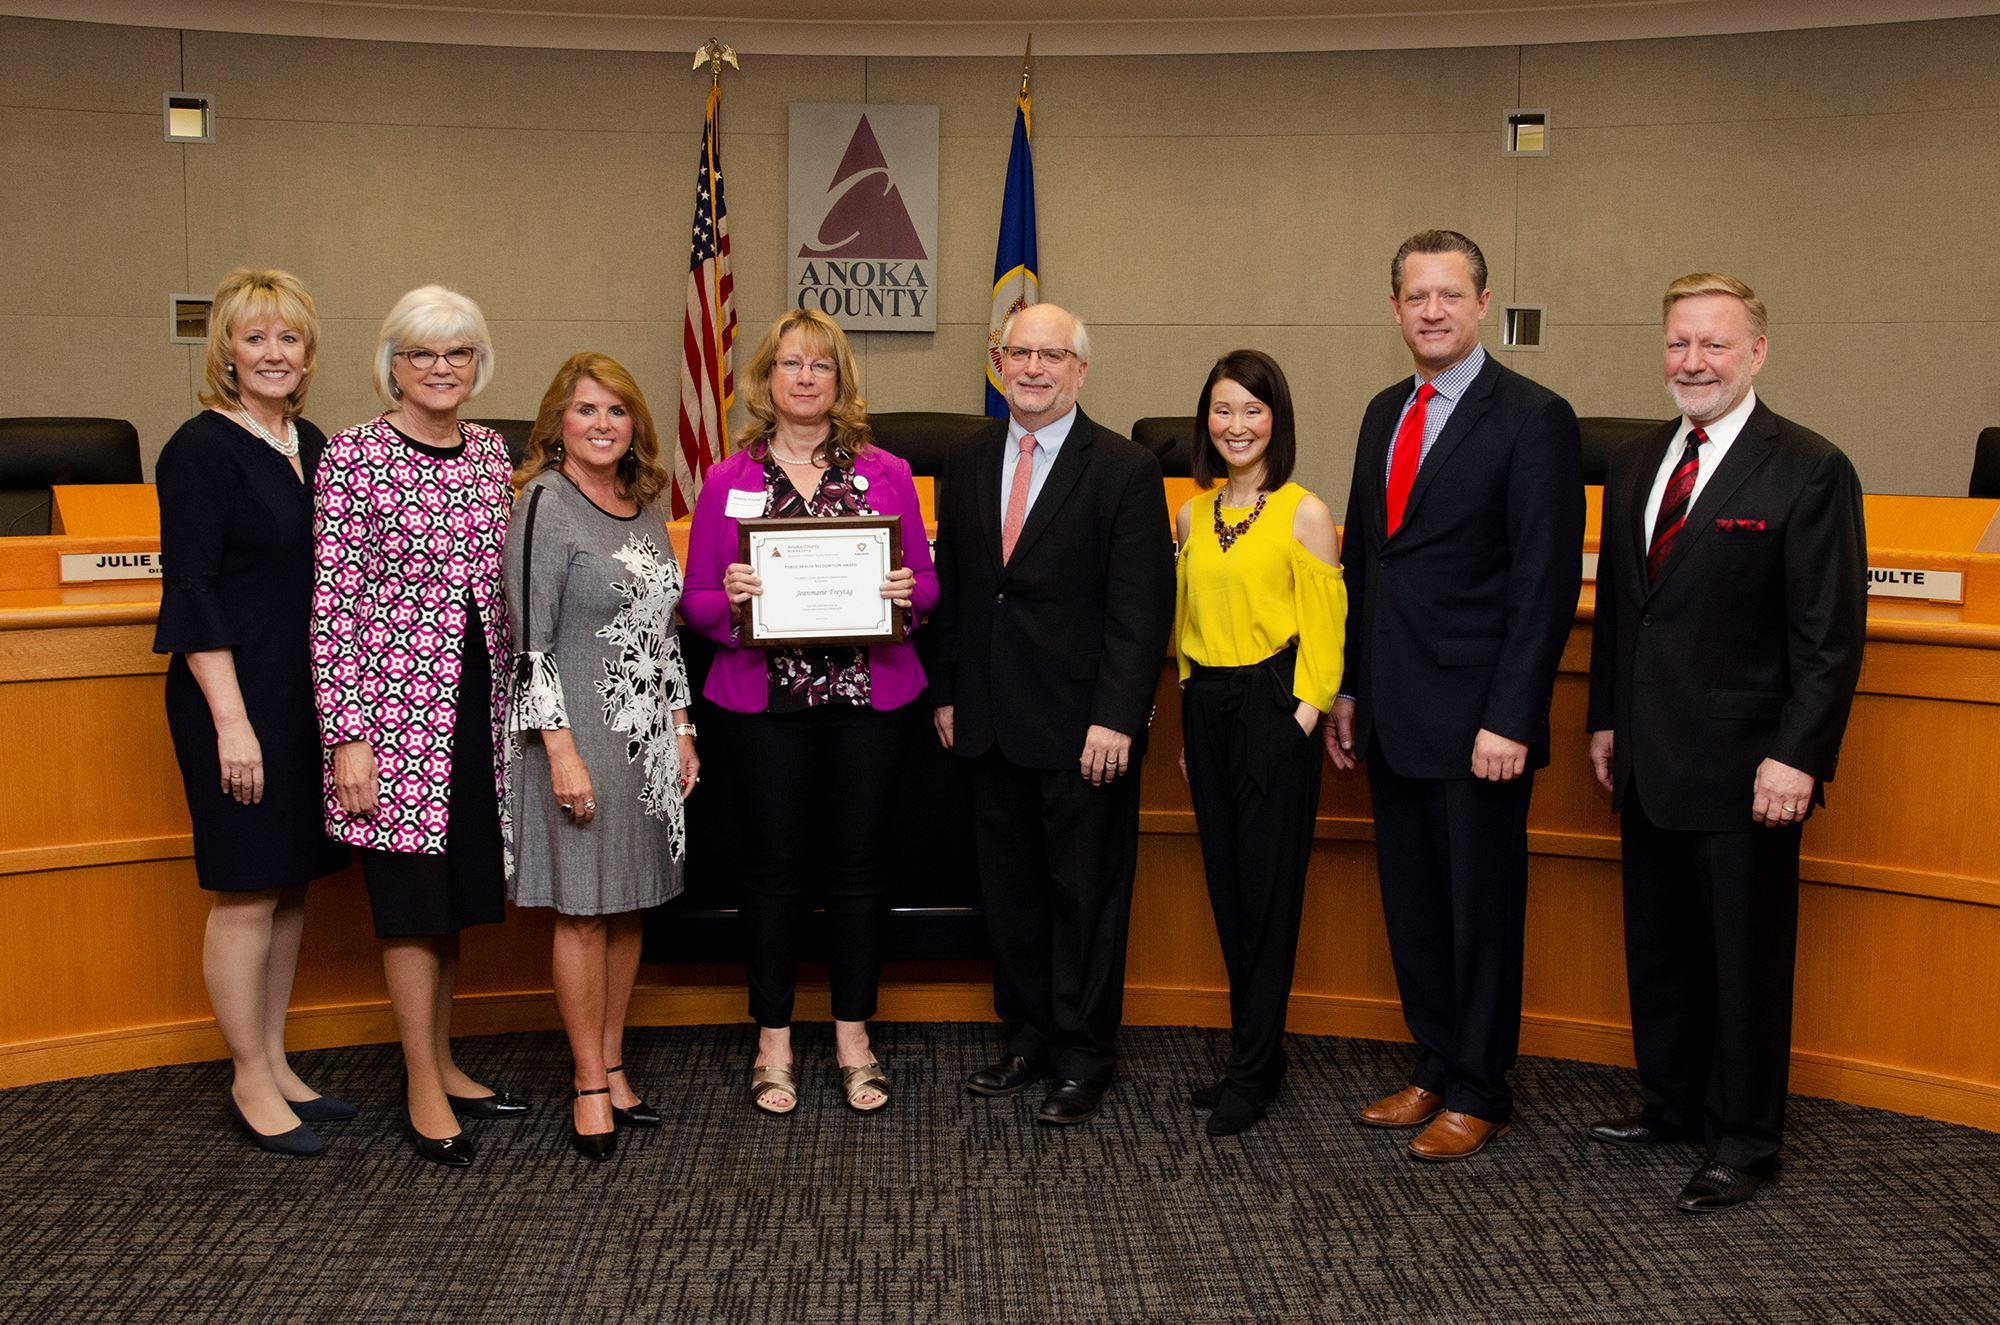 Jeanie Freytag with commissioners receiving award